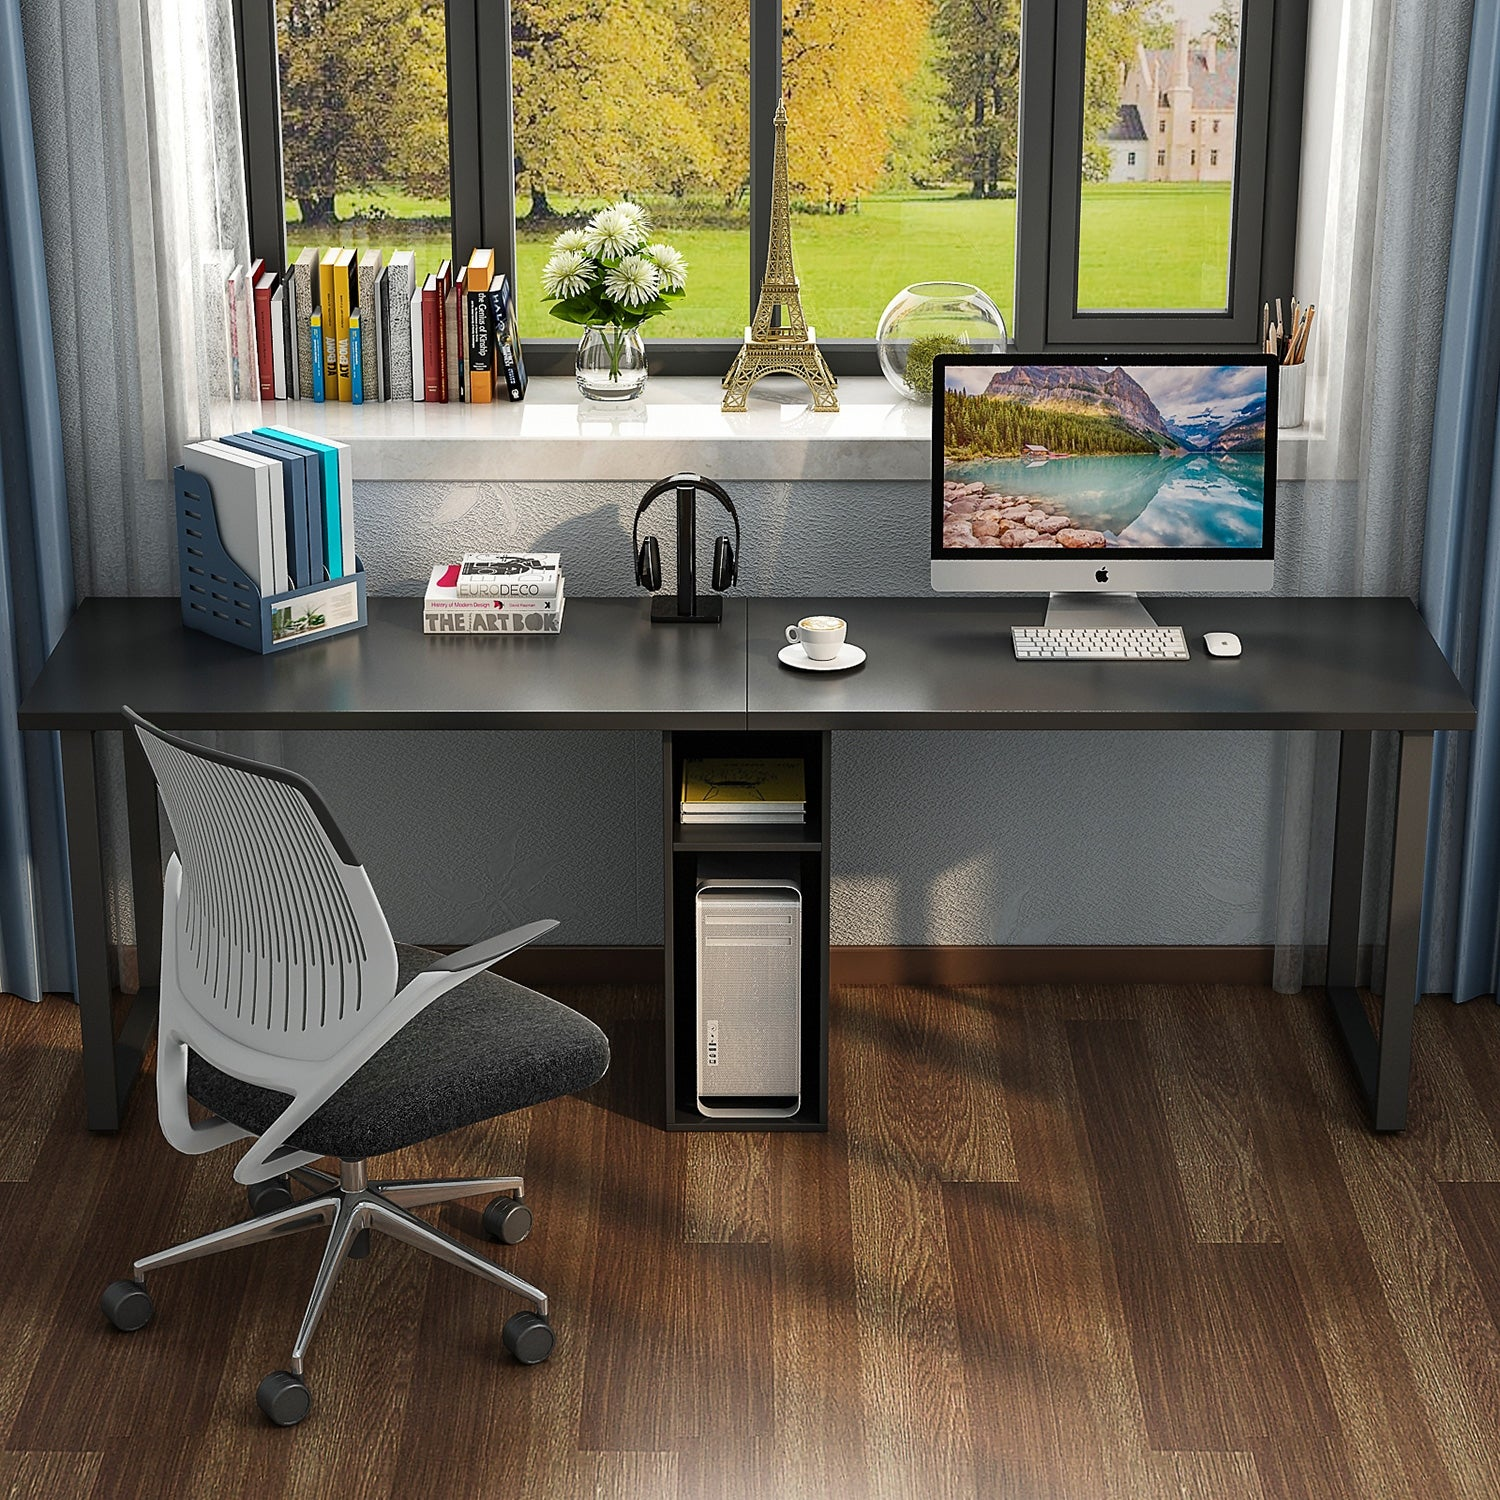 78 Extra Large Double Workstation Computer Desk For Two Person Simple Modern Style Office With Storage And Cabinet Ships To Canada